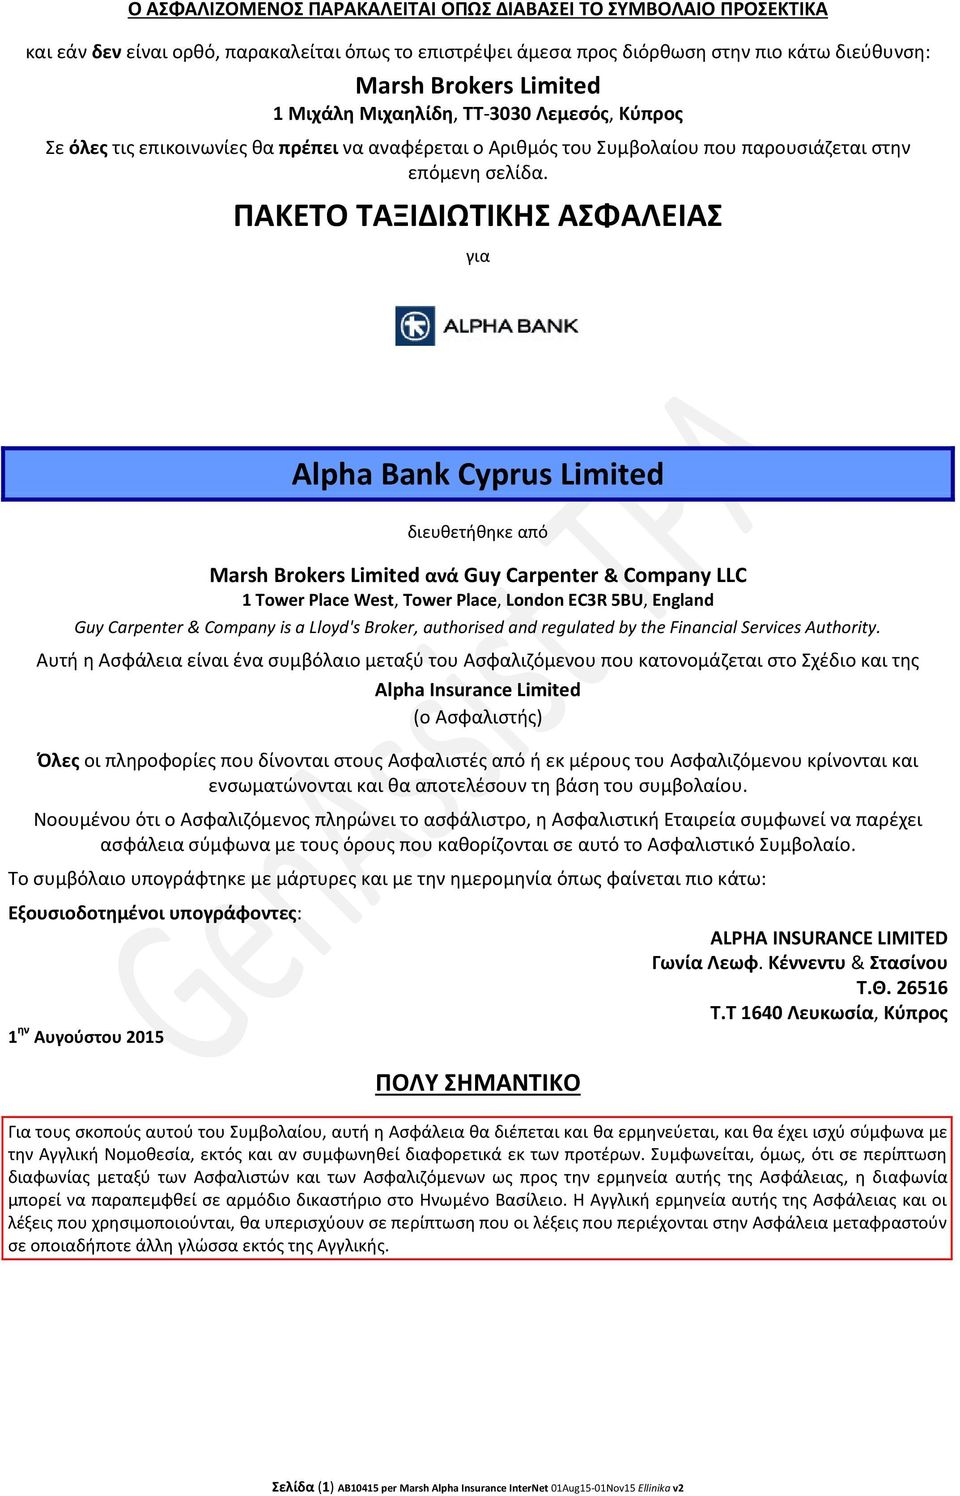 ΠΑΚΕΤΟ ΤΑΞΙΔΙΩΤΙΚΗΣ ΑΣΦΑΛΕΙΑΣ για Alpha Bank Cyprus Limited διευθετήθηκε από Marsh Brokers Limited ανά Guy Carpenter & Company LLC 1 Tower Place West, Tower Place, London EC3R 5BU, England Guy